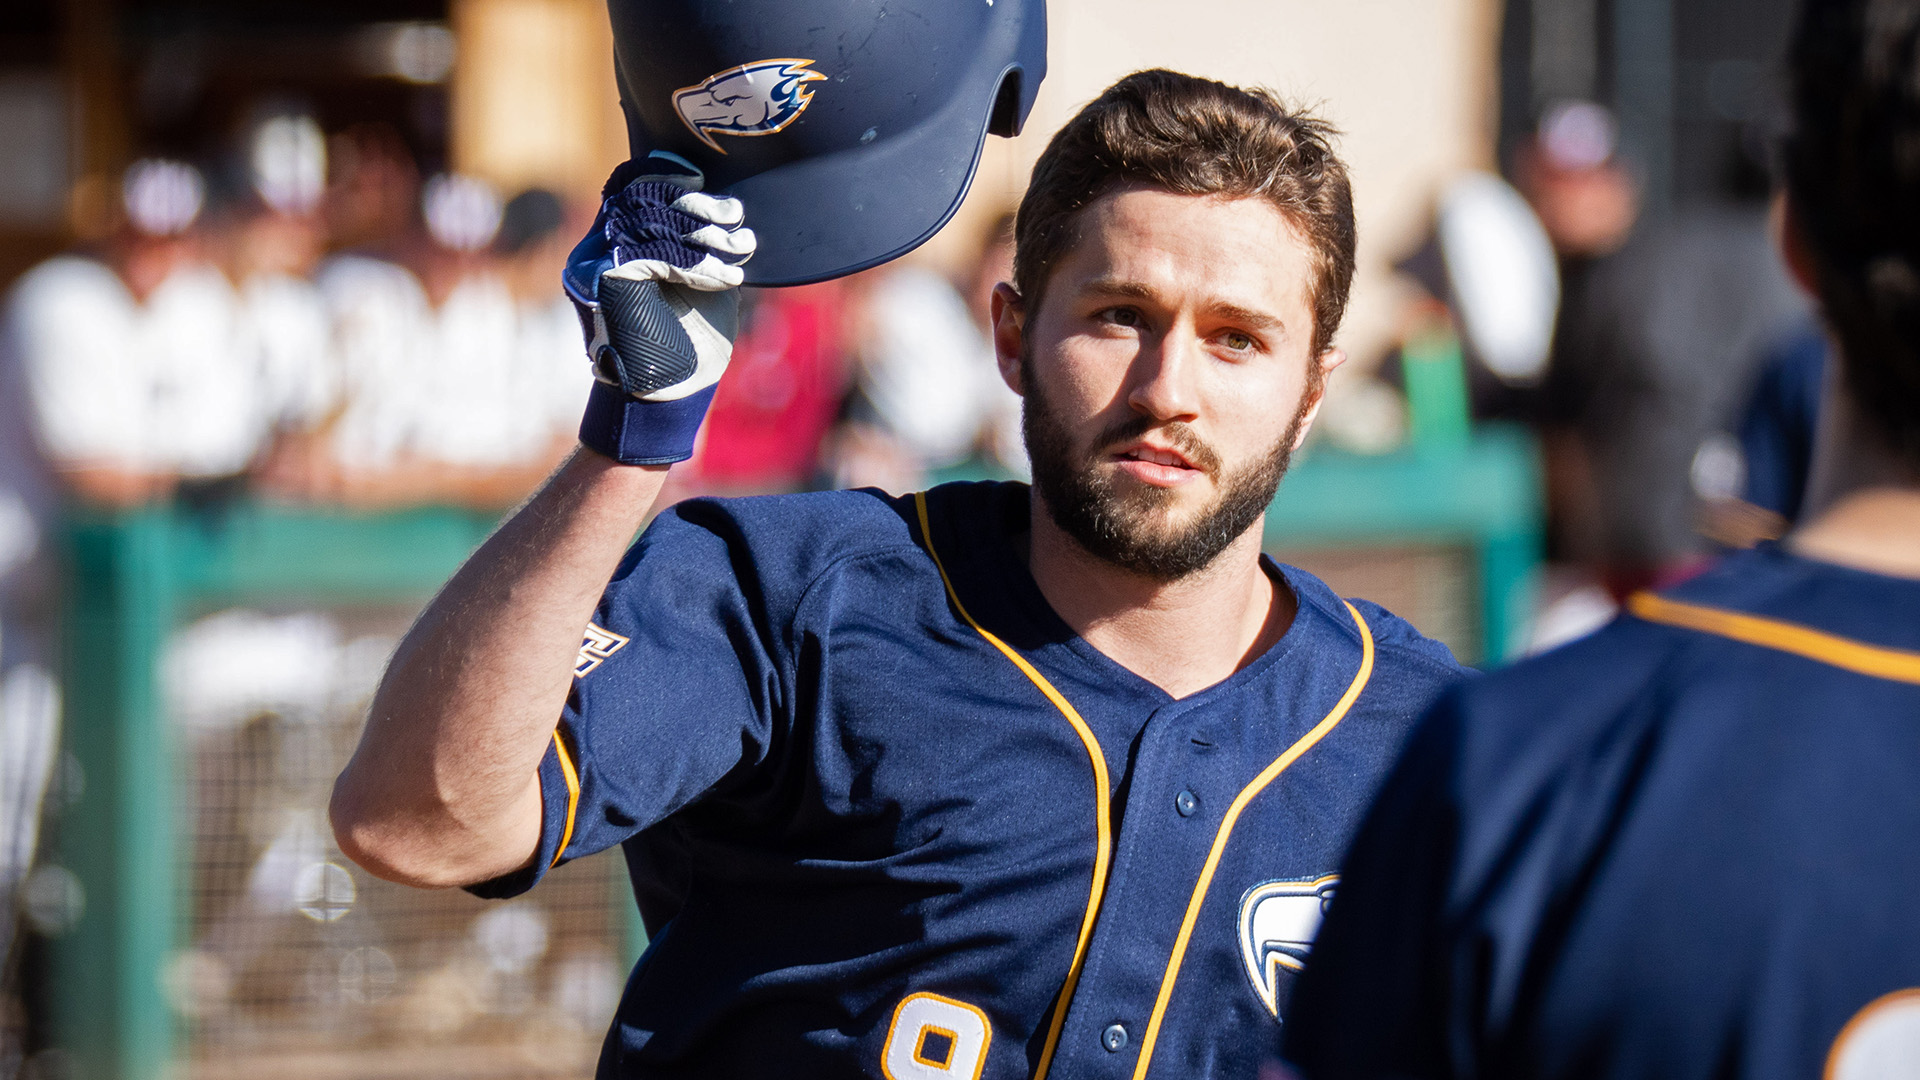 Former Whalley Chief Jordan Dray (White Rock, B.C.) had six hits and six RBIs in three games for the University of British Columbia Thunderbirds in the California Pacific Conference Championship.